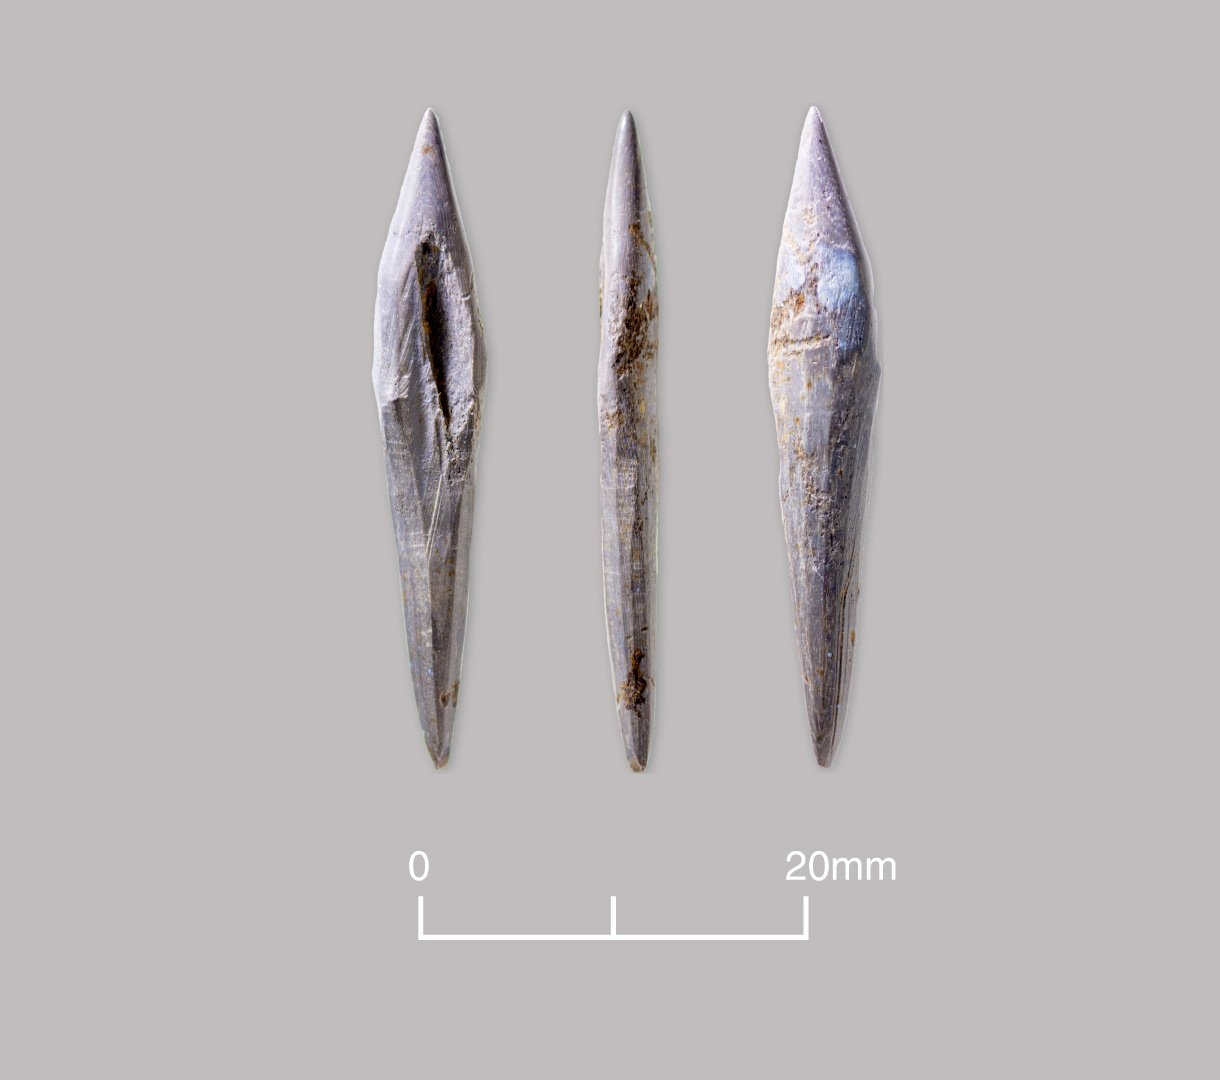 Splinter of bone sharpened to point and polished from use. Probably an awl or piercing tool. Late Bronze Age to Early Iron Age (c. 1000–600 BC)